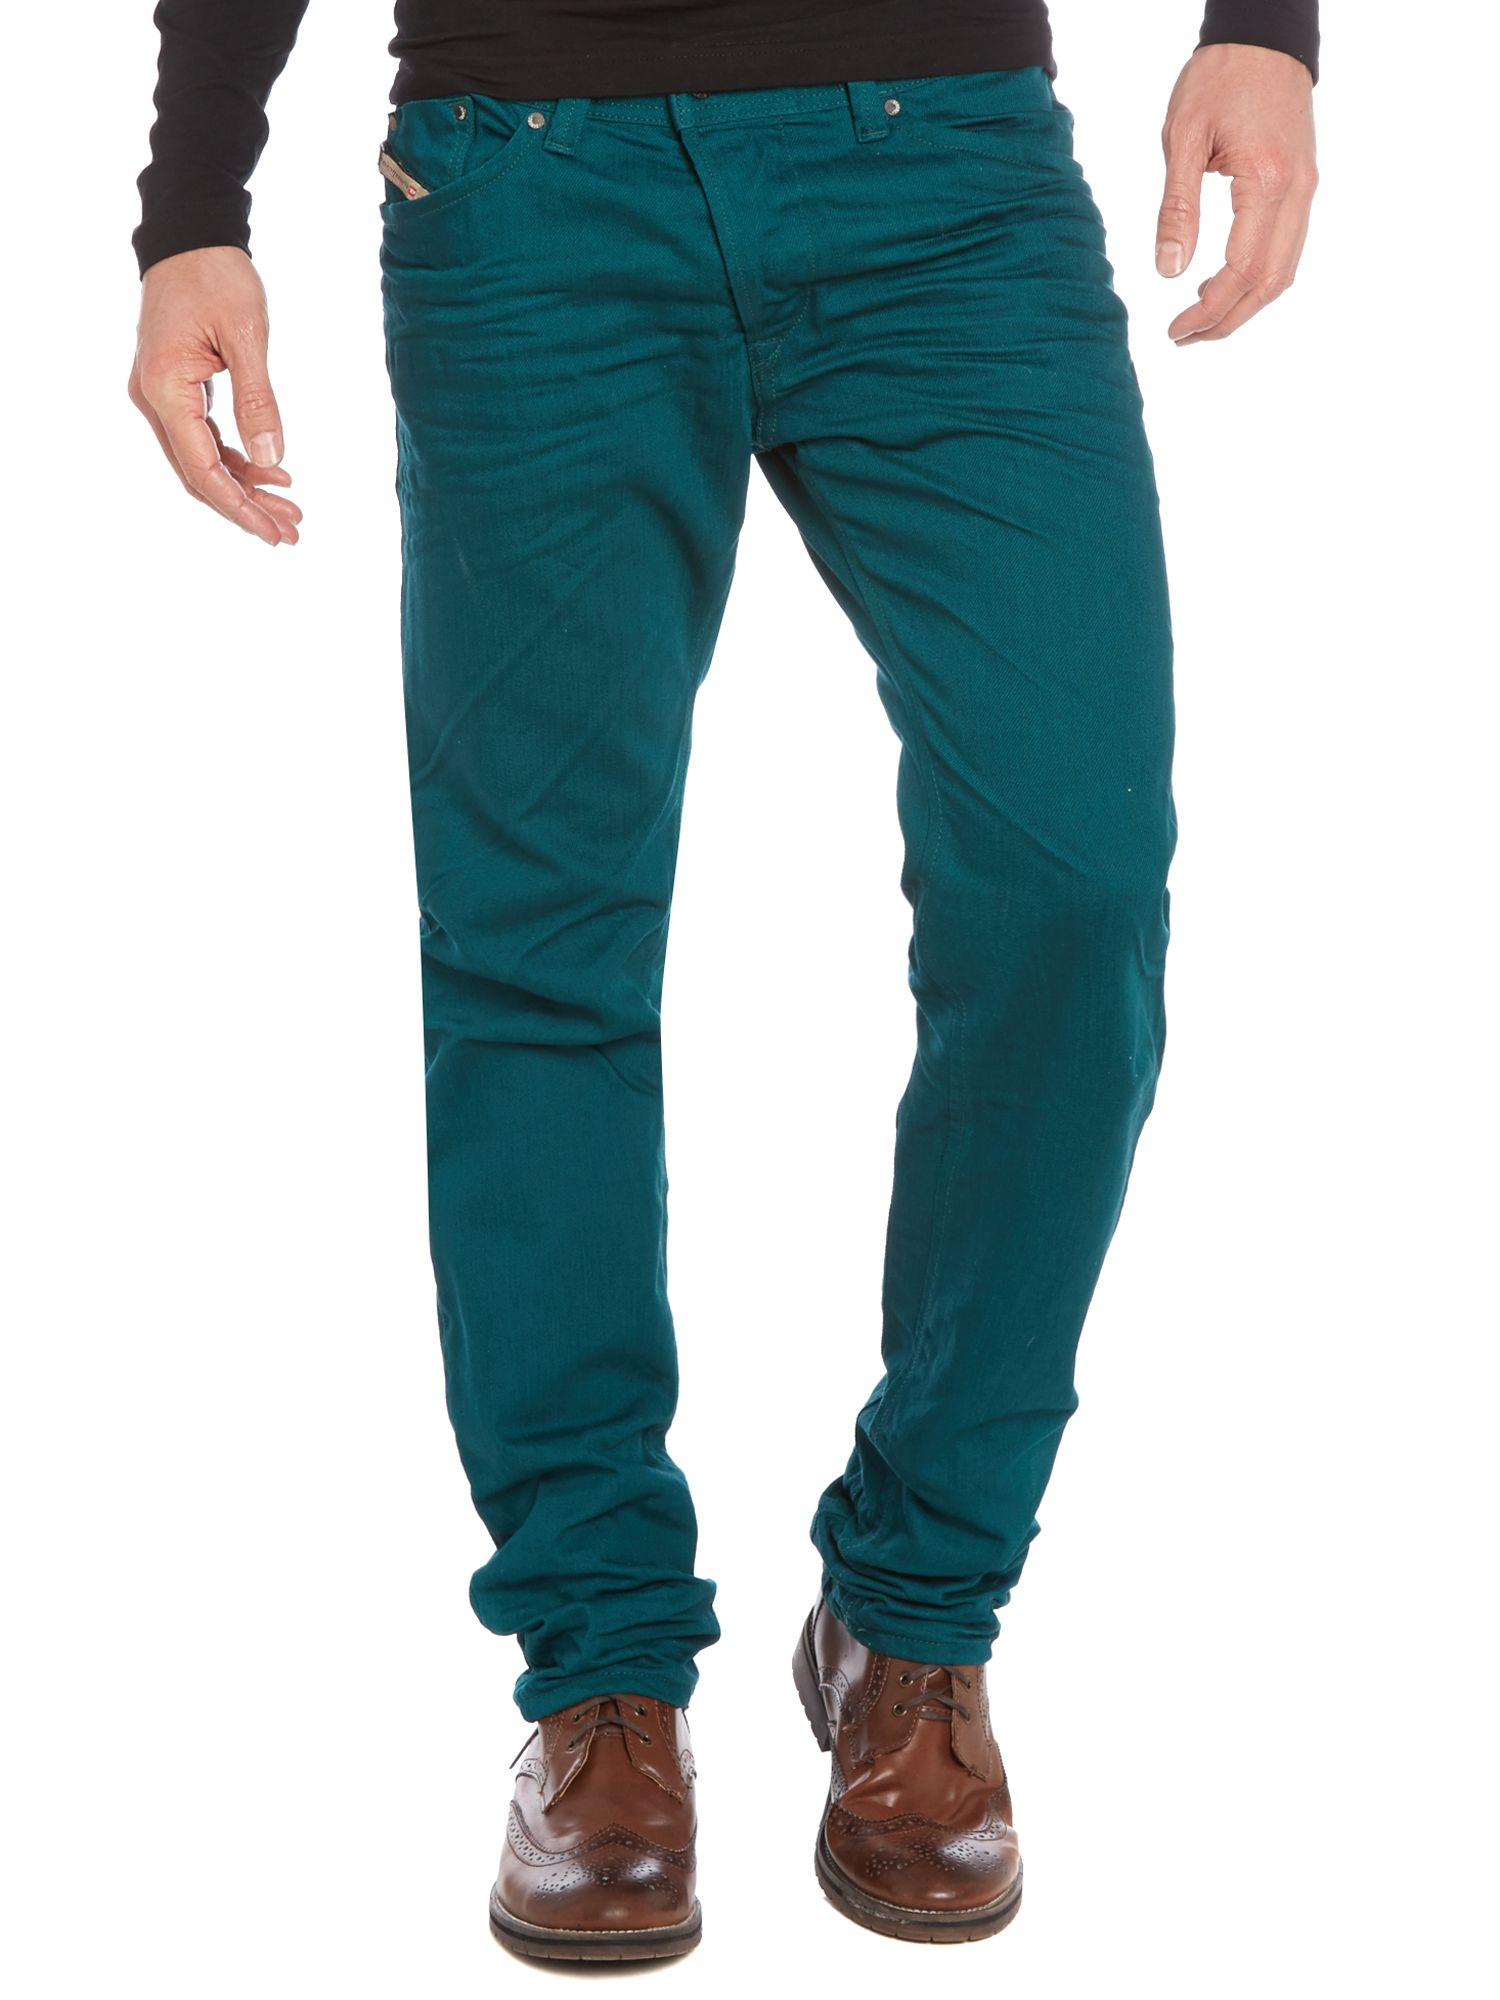 Darron 8QU regular slim fit jeans